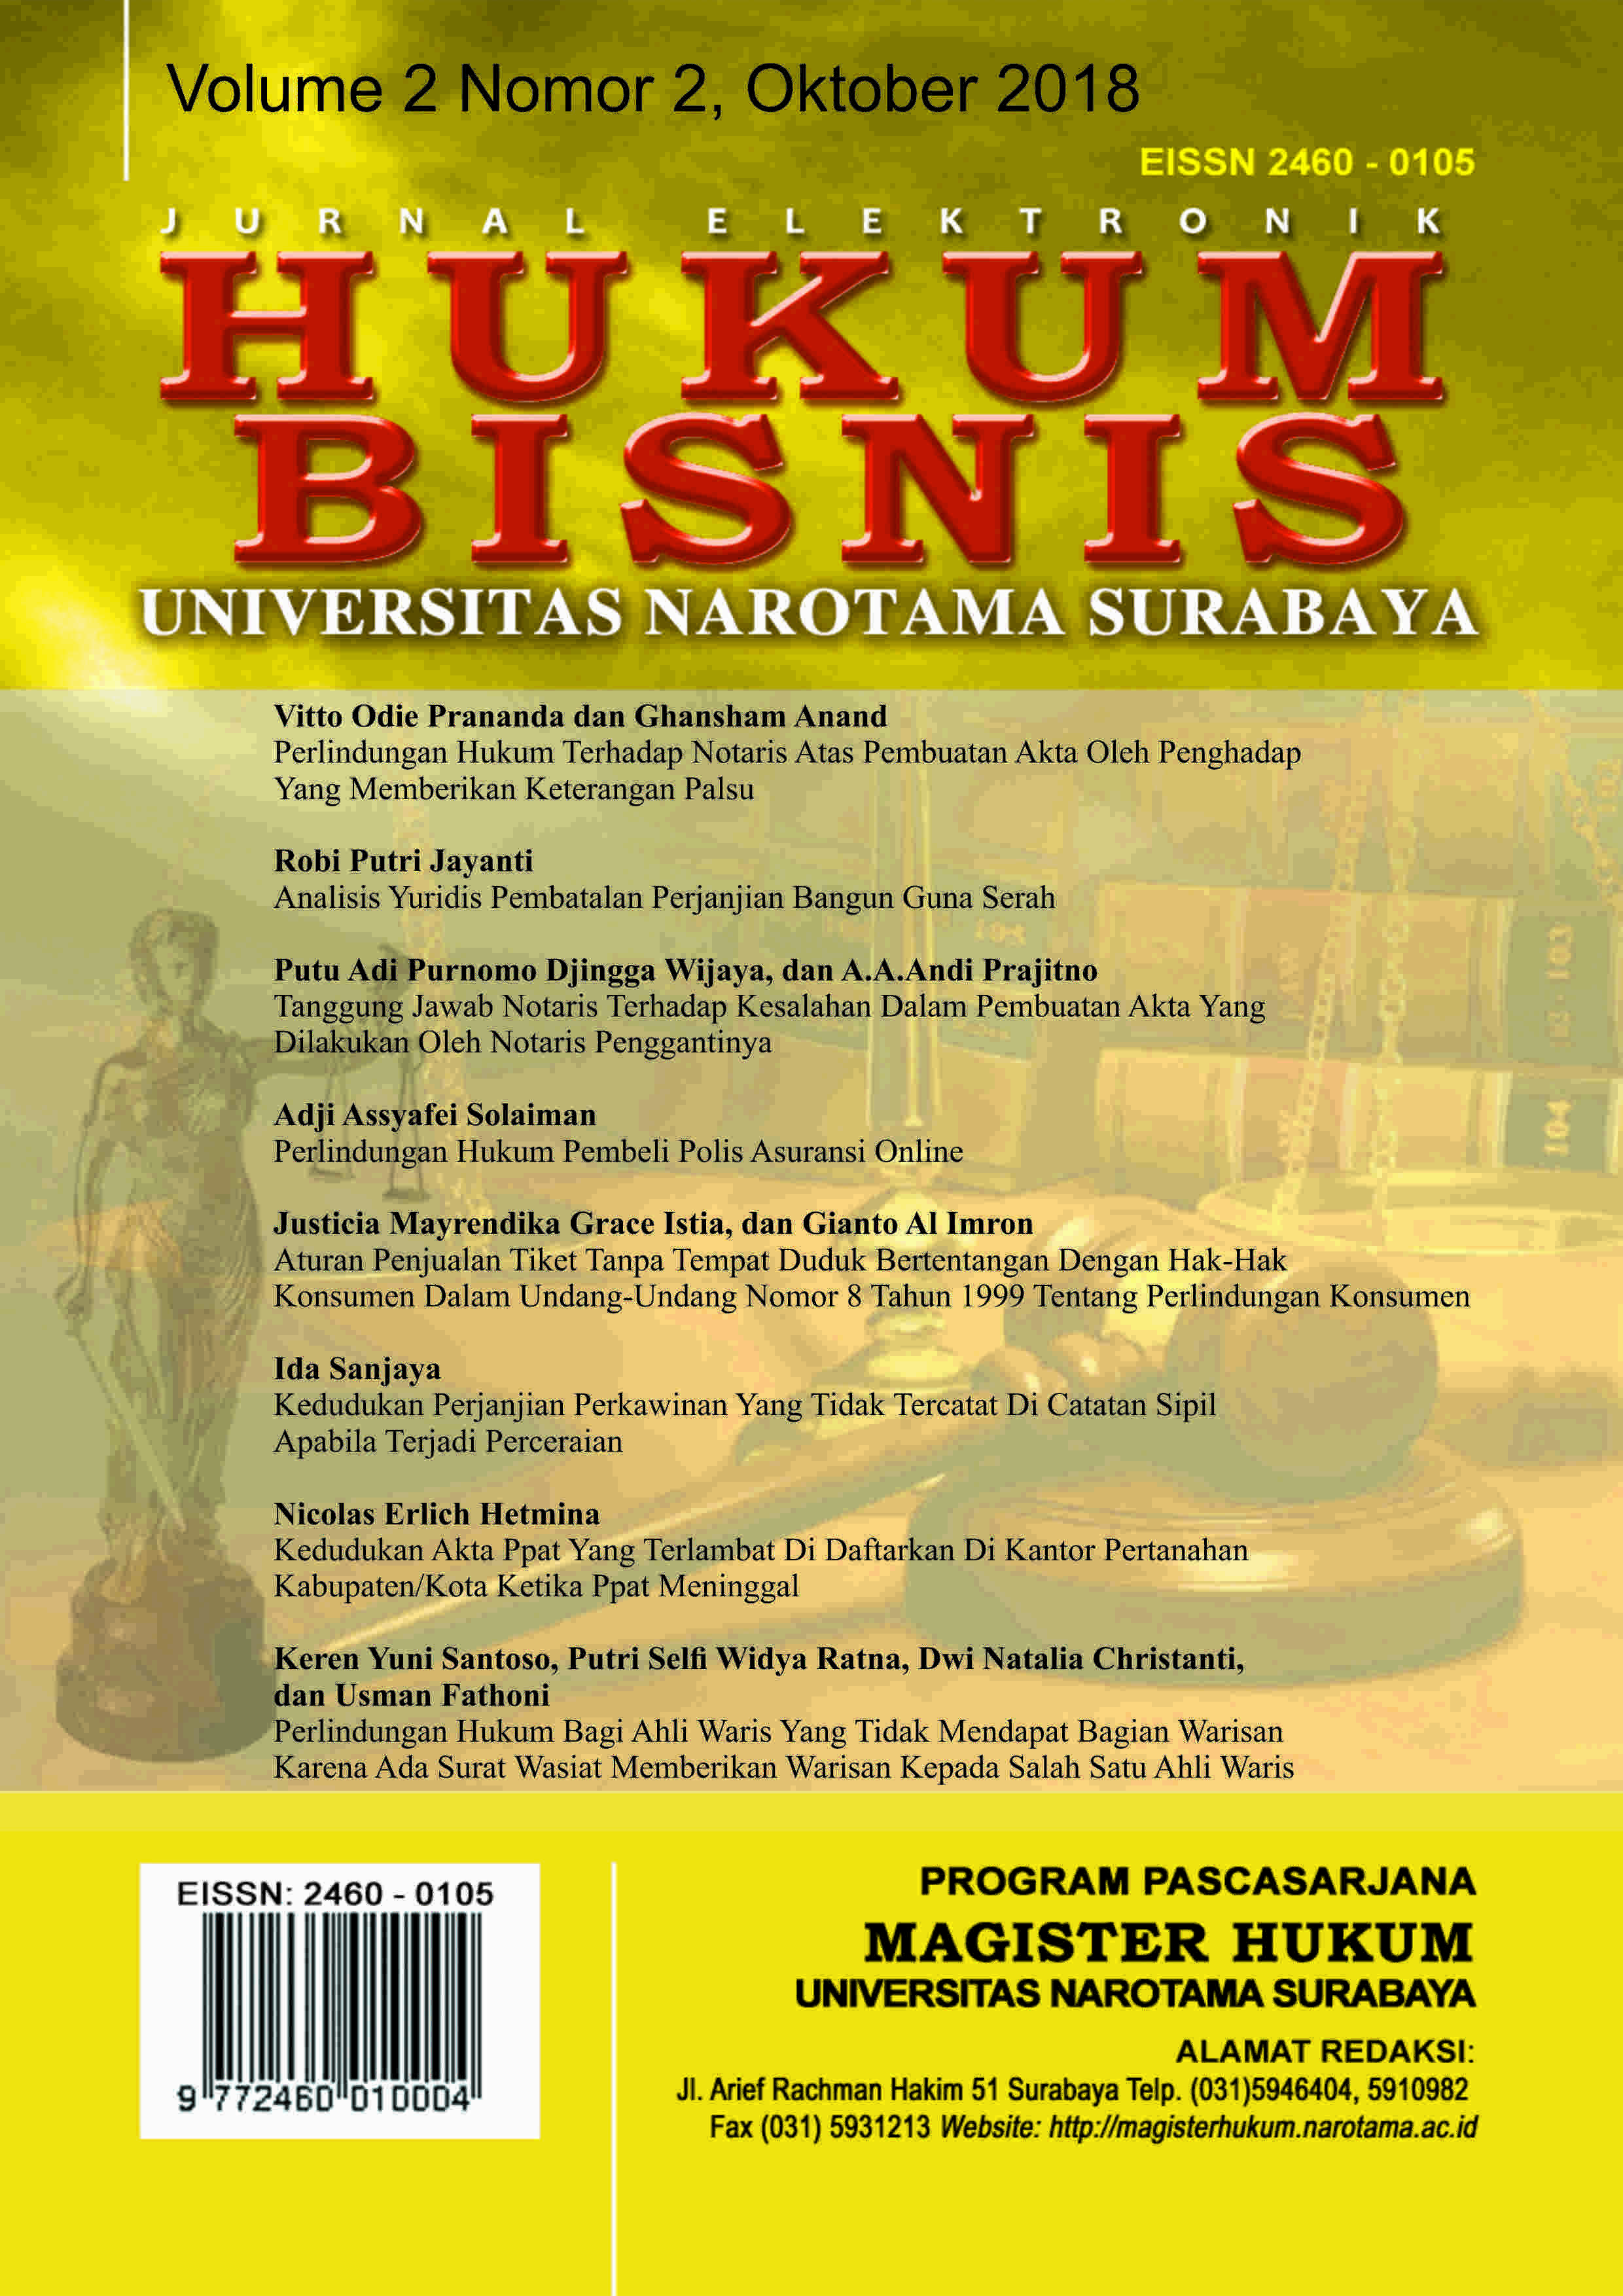 JURNAL MAGISTER HUKUM